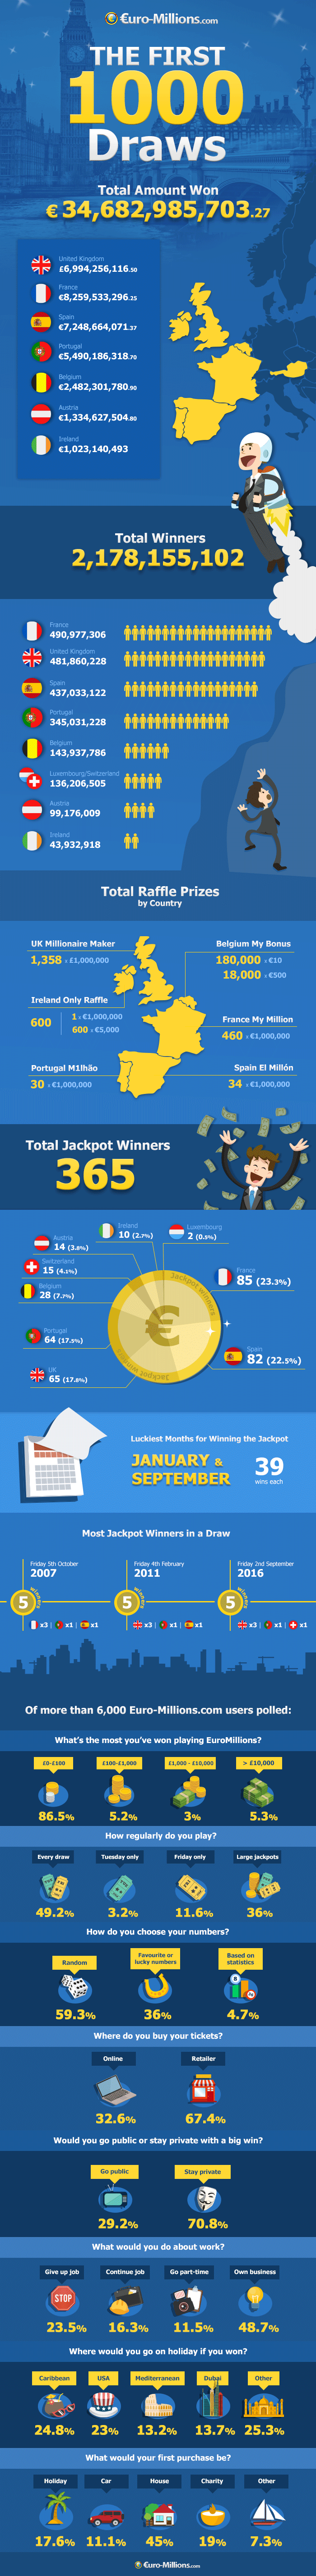 Infographic: The First 1,000 EuroMillions Draws